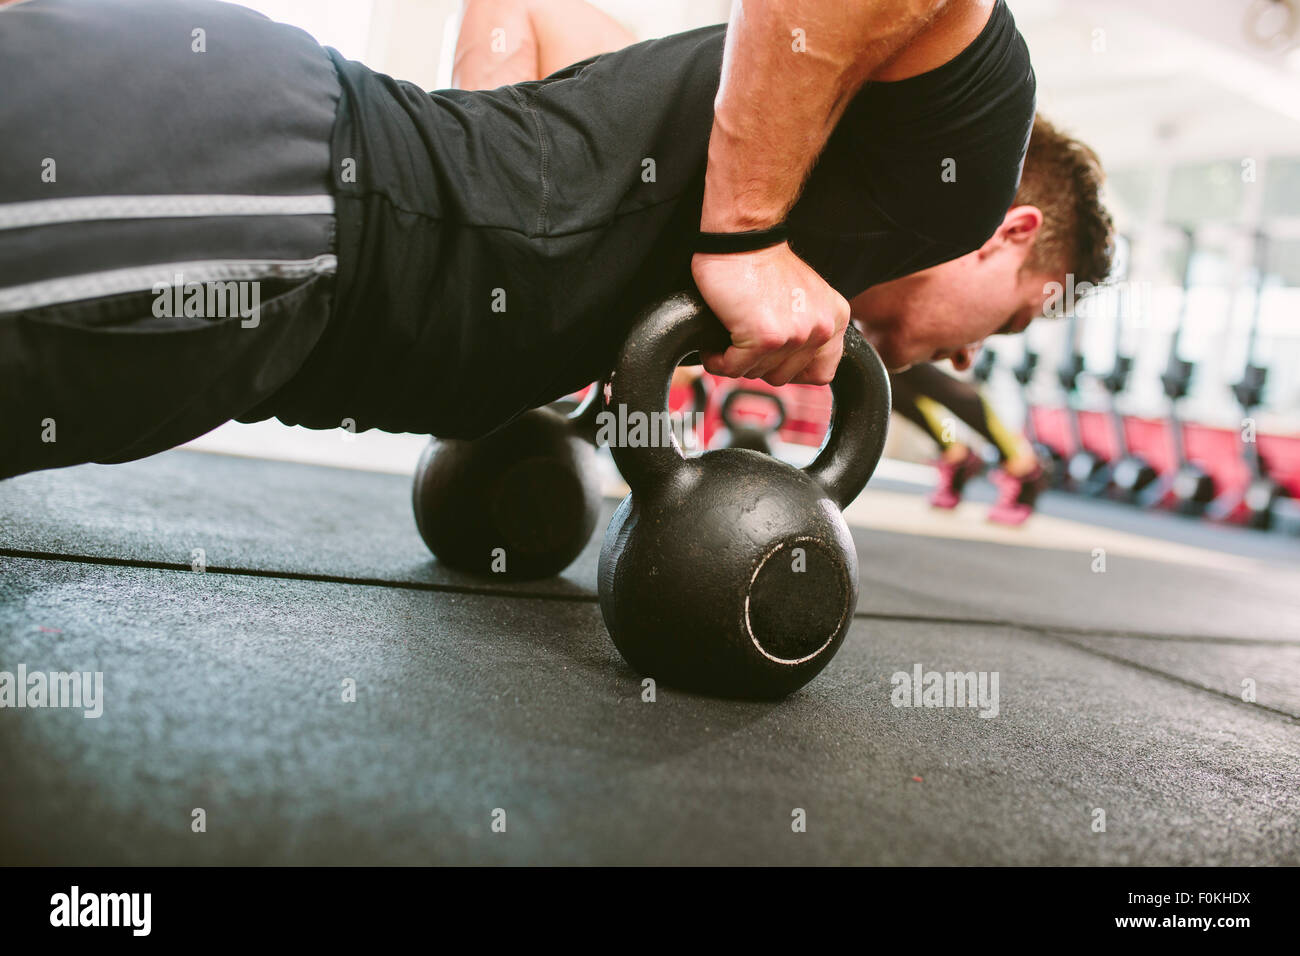 CrossFit atleta facendo push-up su kettlebells Immagini Stock